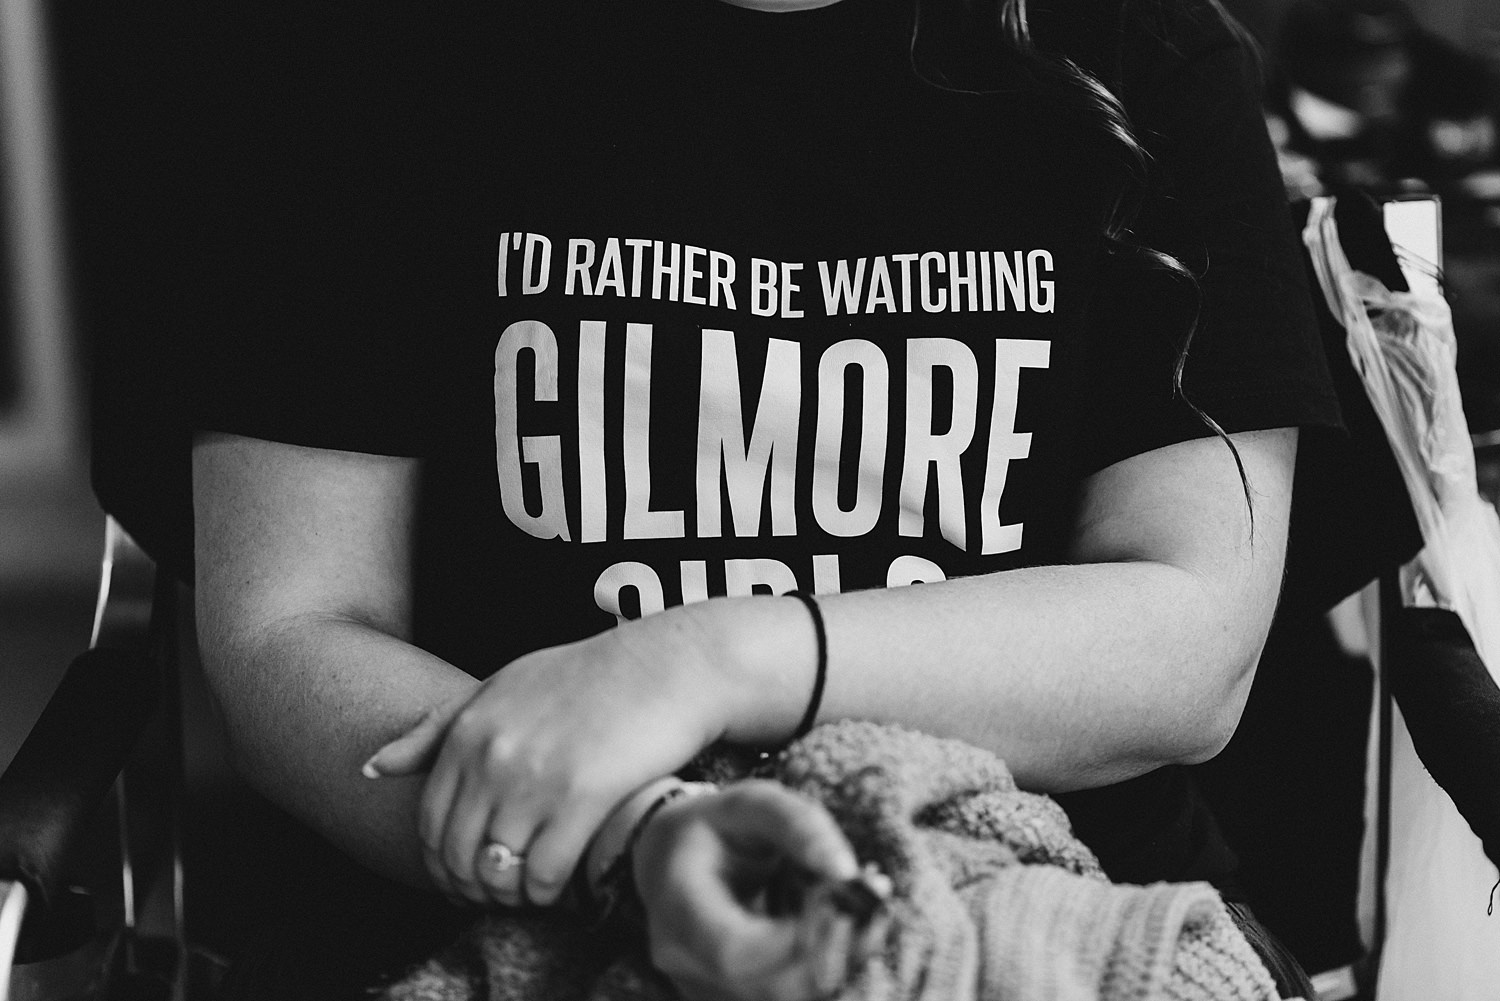 Gilmore Girls Tshirt On Bridesmaid